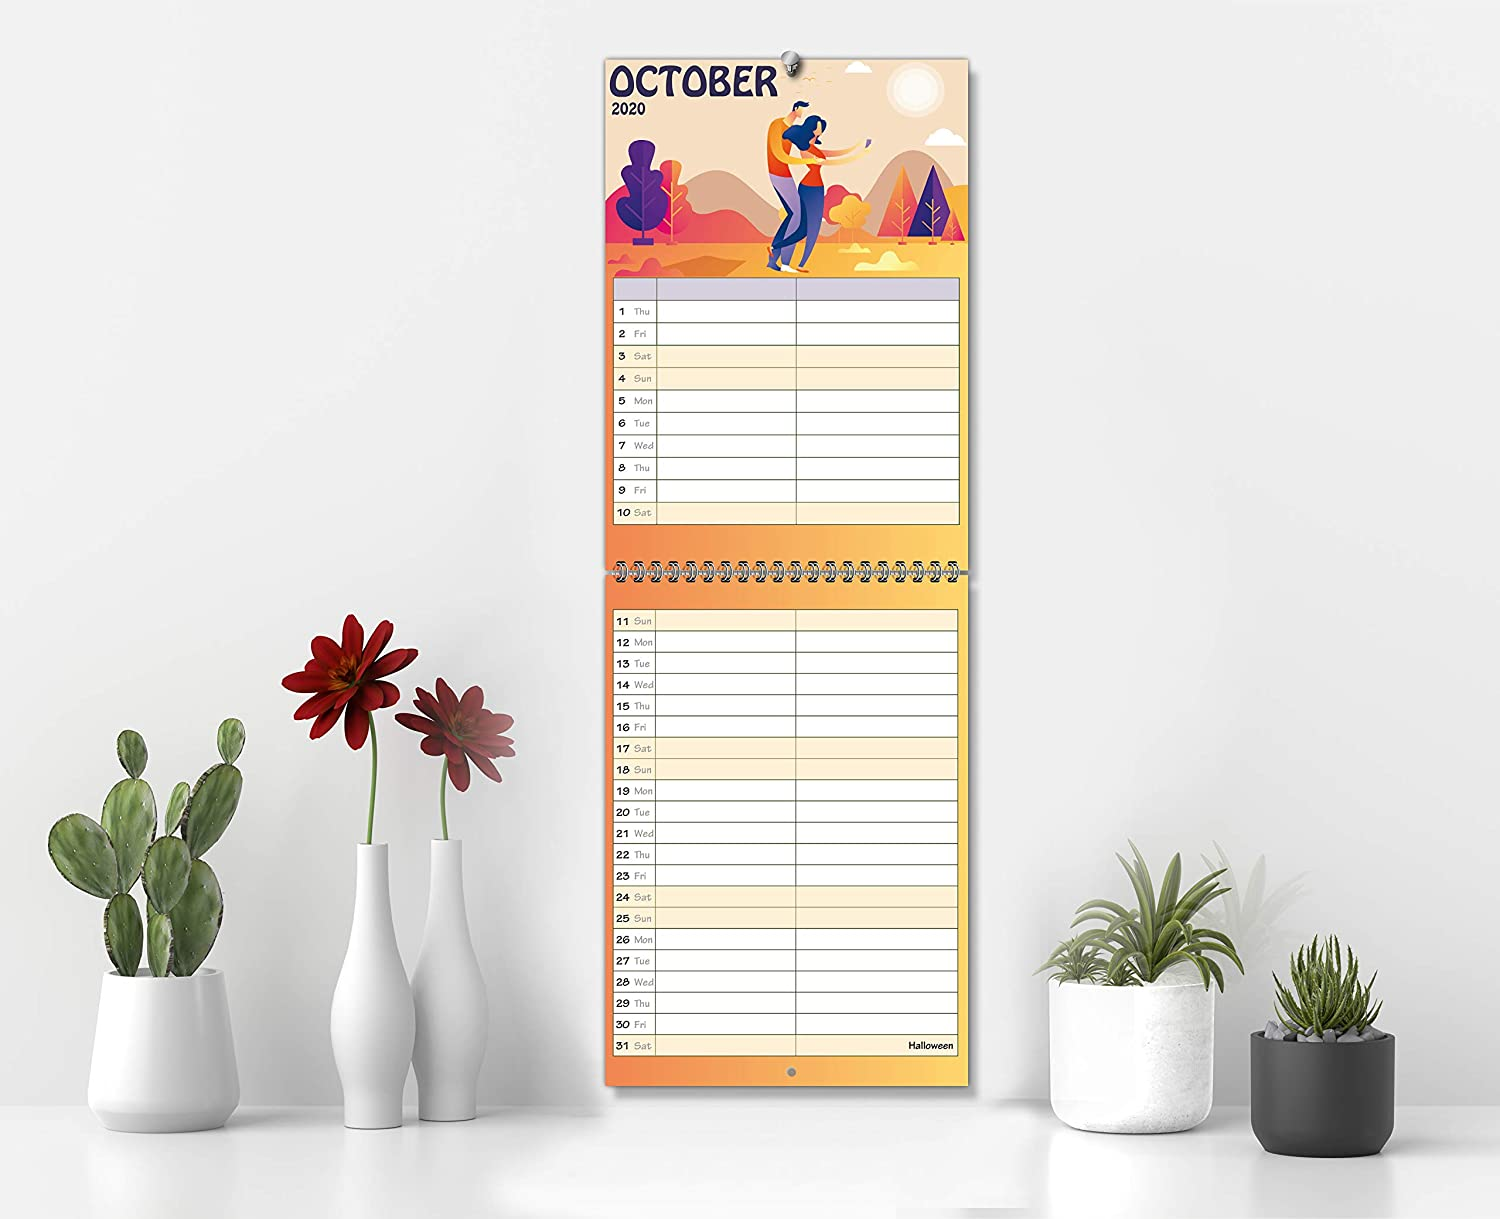 15 Months: Oct/'20 | Month-to-View Layout with Two Columns Dec/'21. | His /& Hers Planner Calendar 2021 Wall Calendar 2021 Couple /& Small Family Edition by Dream Planners